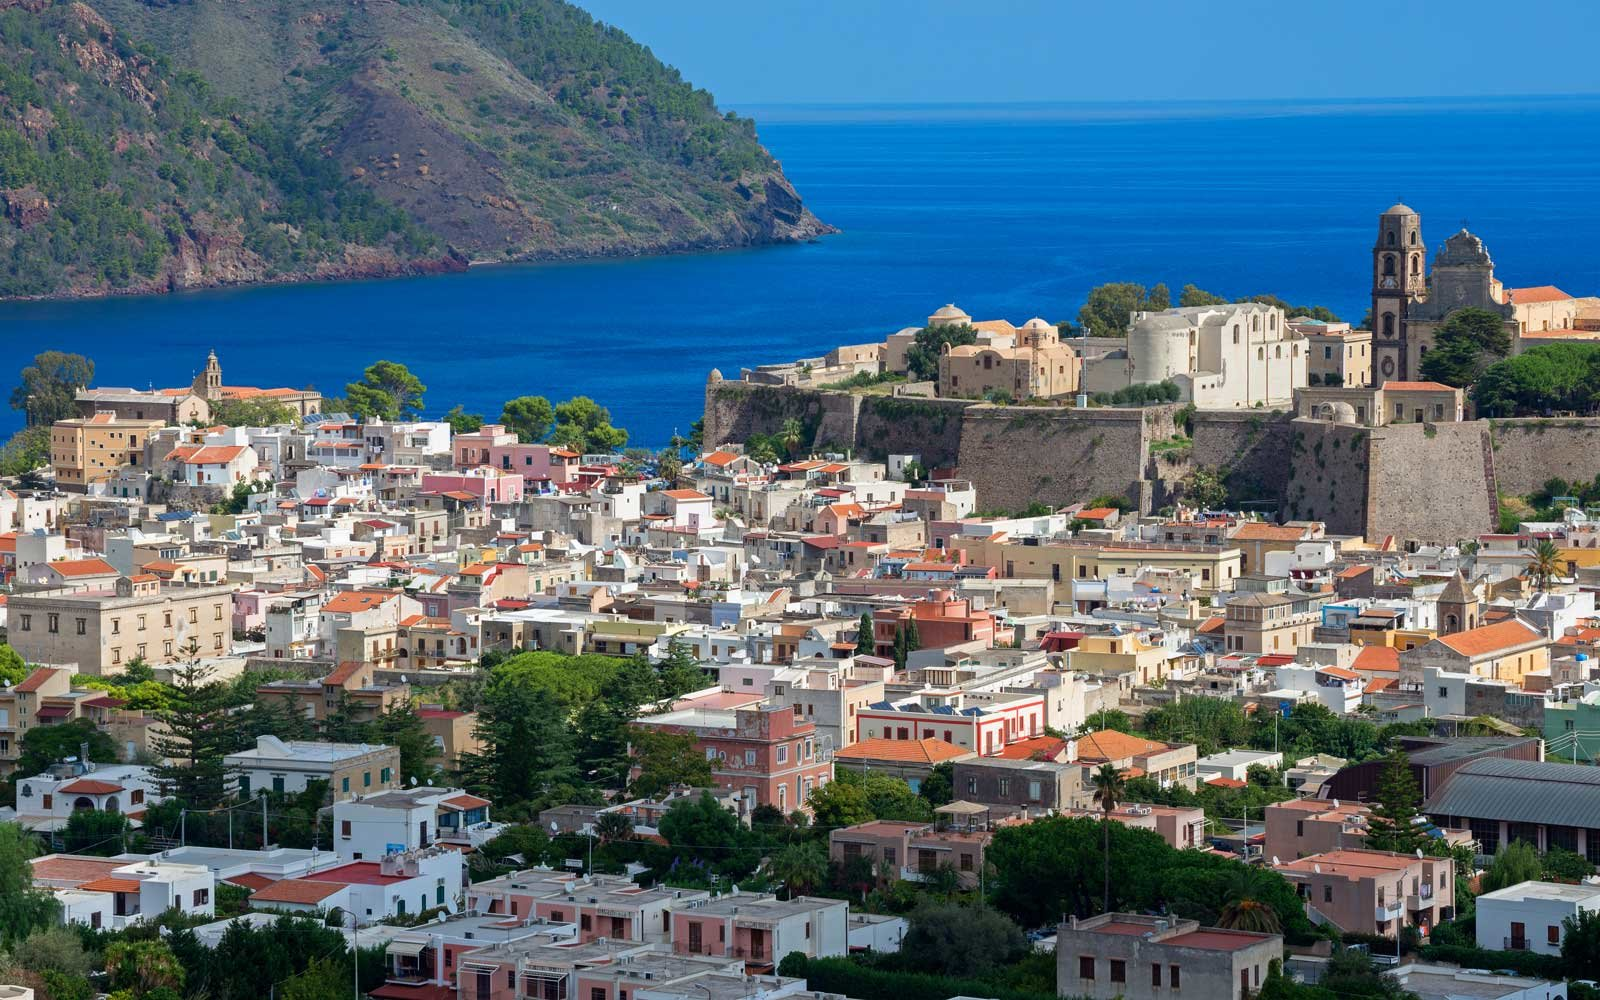 Enjoy magnificent waters and outdoor activities at Italy's Aeolian Islands.